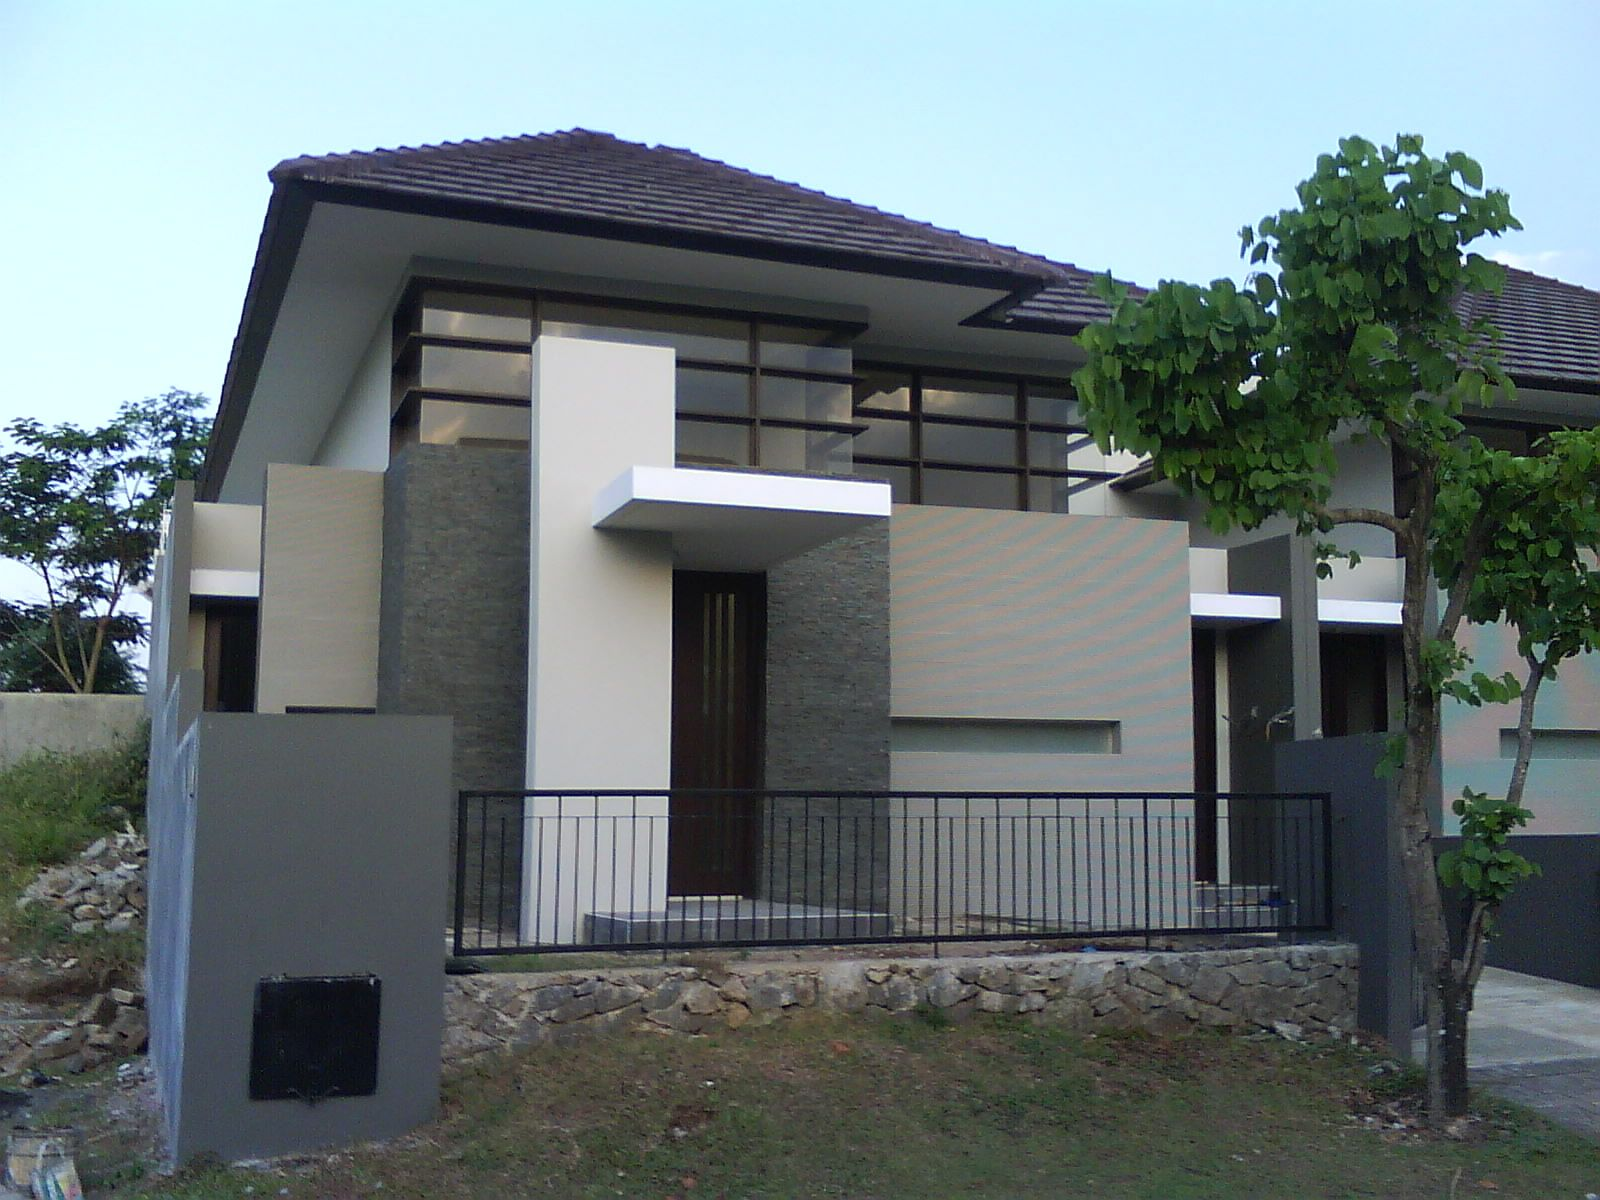 Stunning Modern Exterior Paint Colors Gallery - Interior ... on Modern House Painting Ideas  id=59244